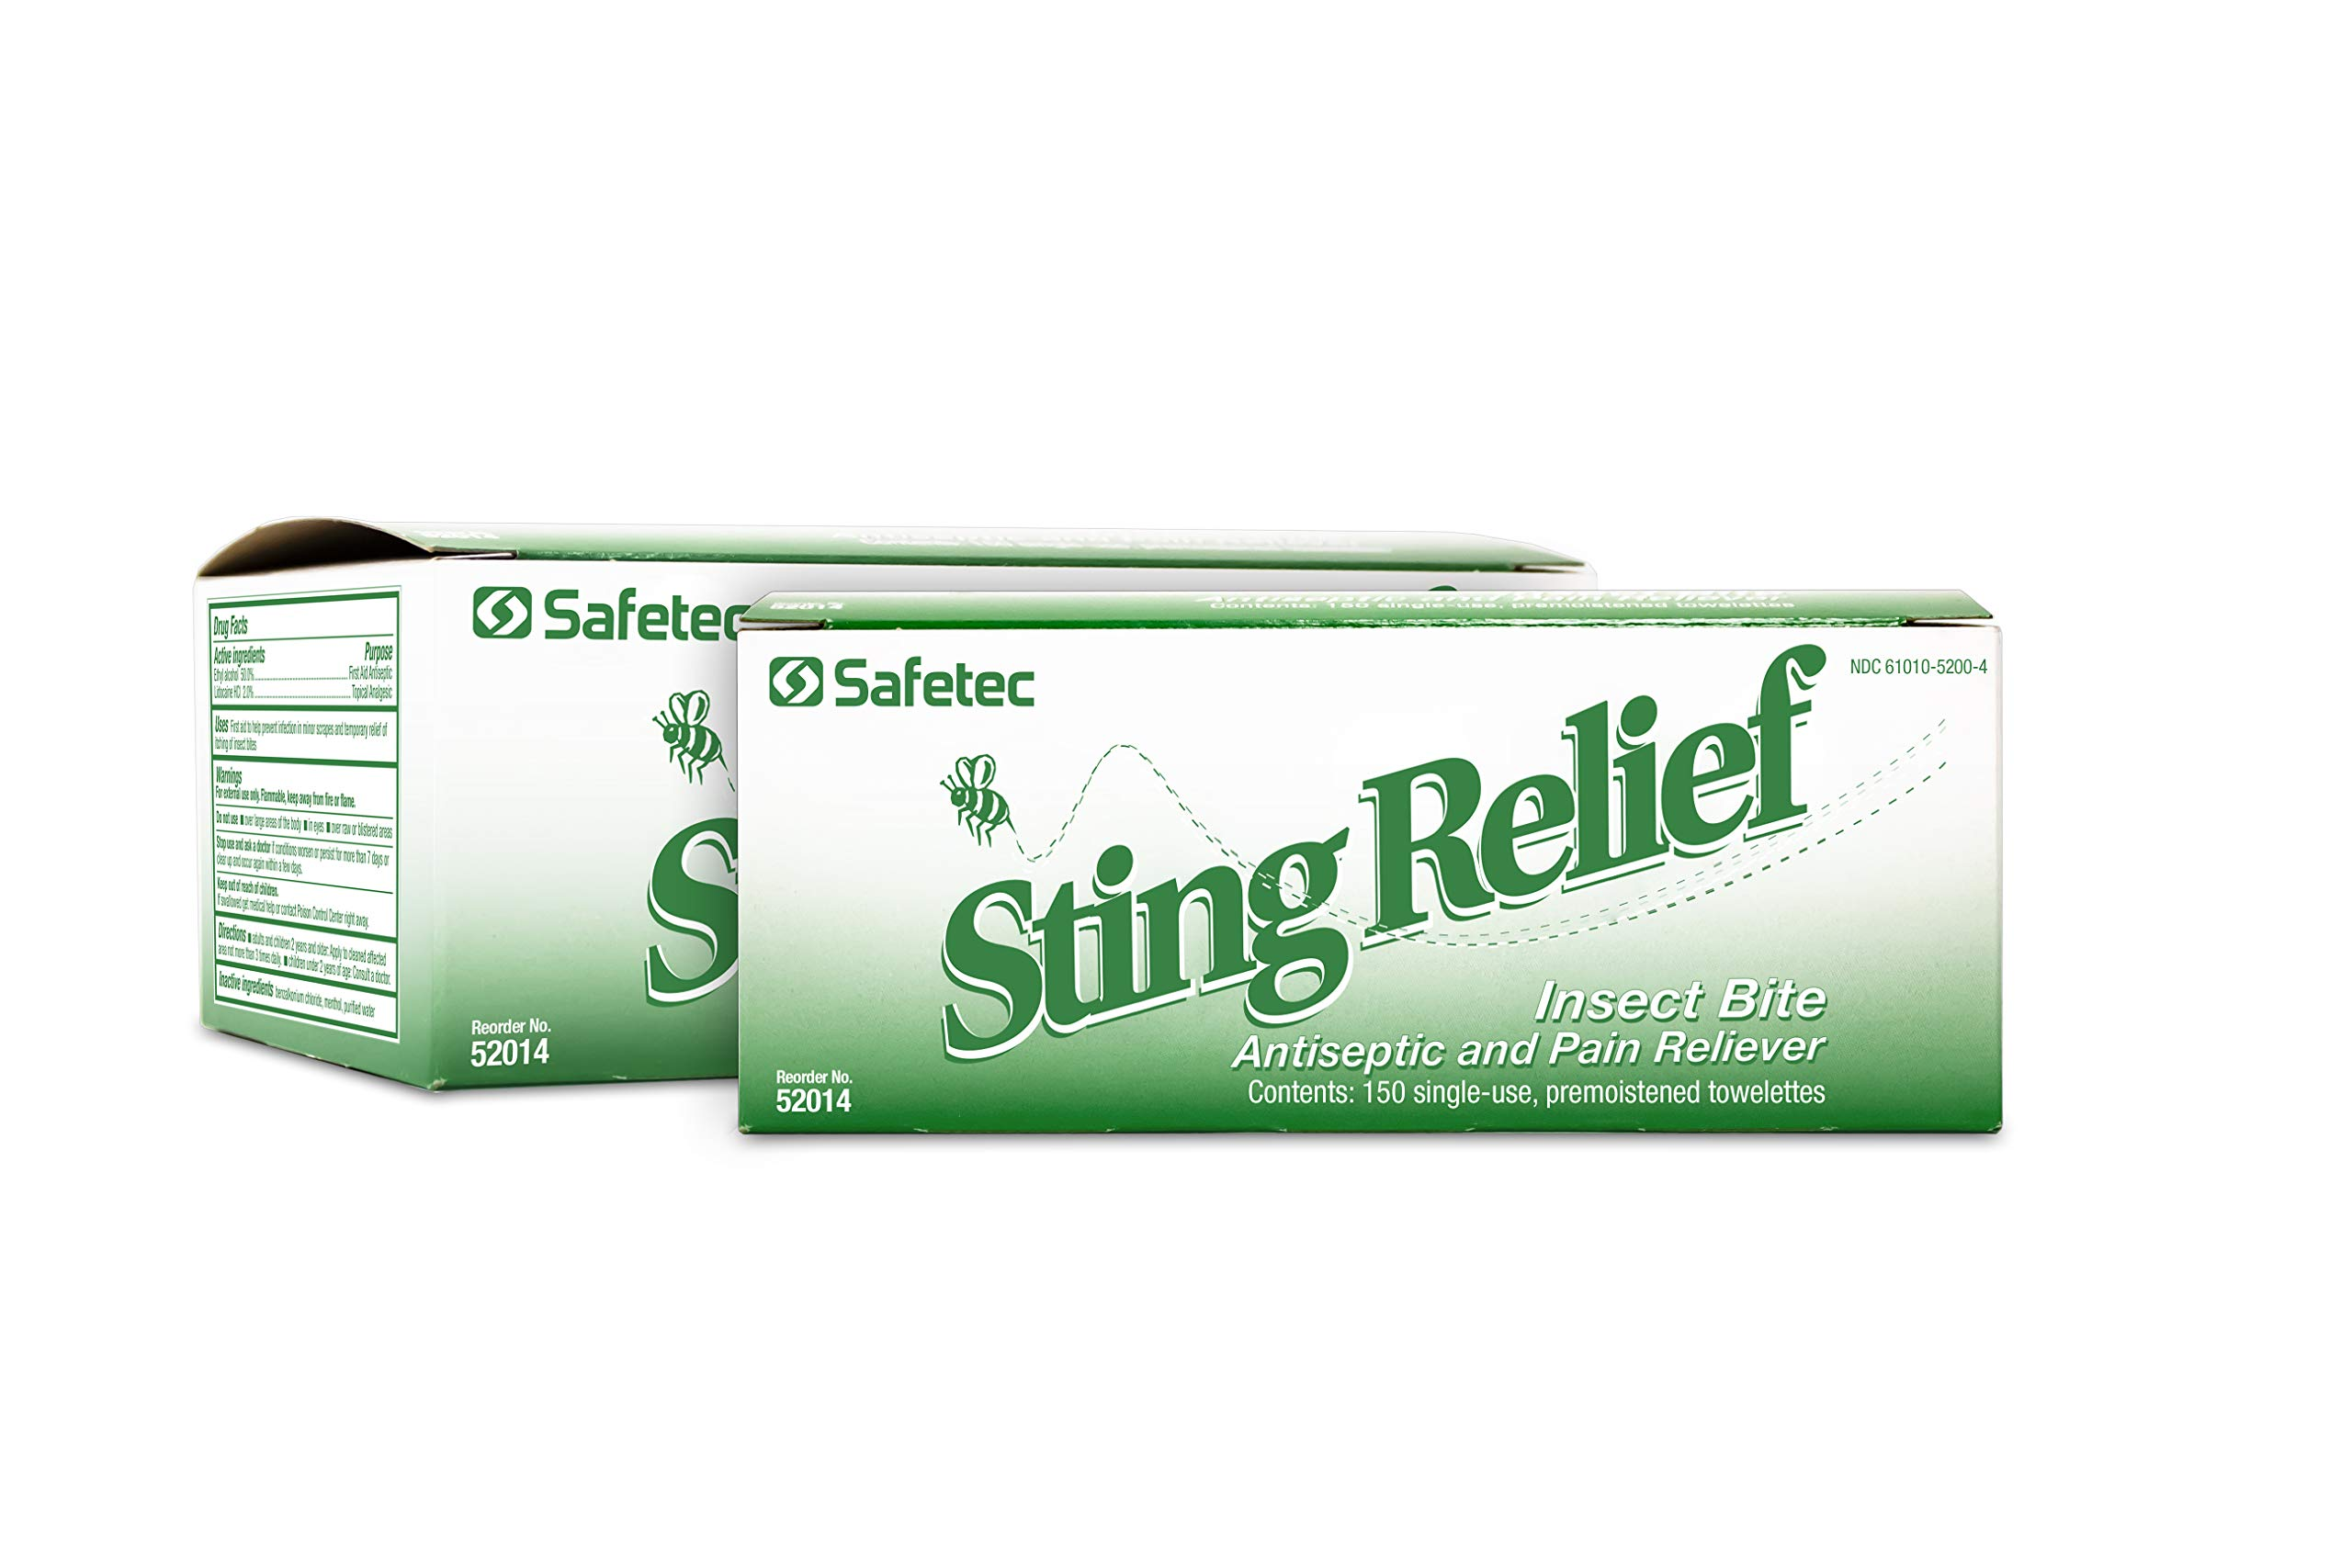 Safetec Sting Relief Wipes 150ct Box (2 Pack of 150ct Wipes - 300 Sting Wipes) for Insect Bites & Stings by Safetec